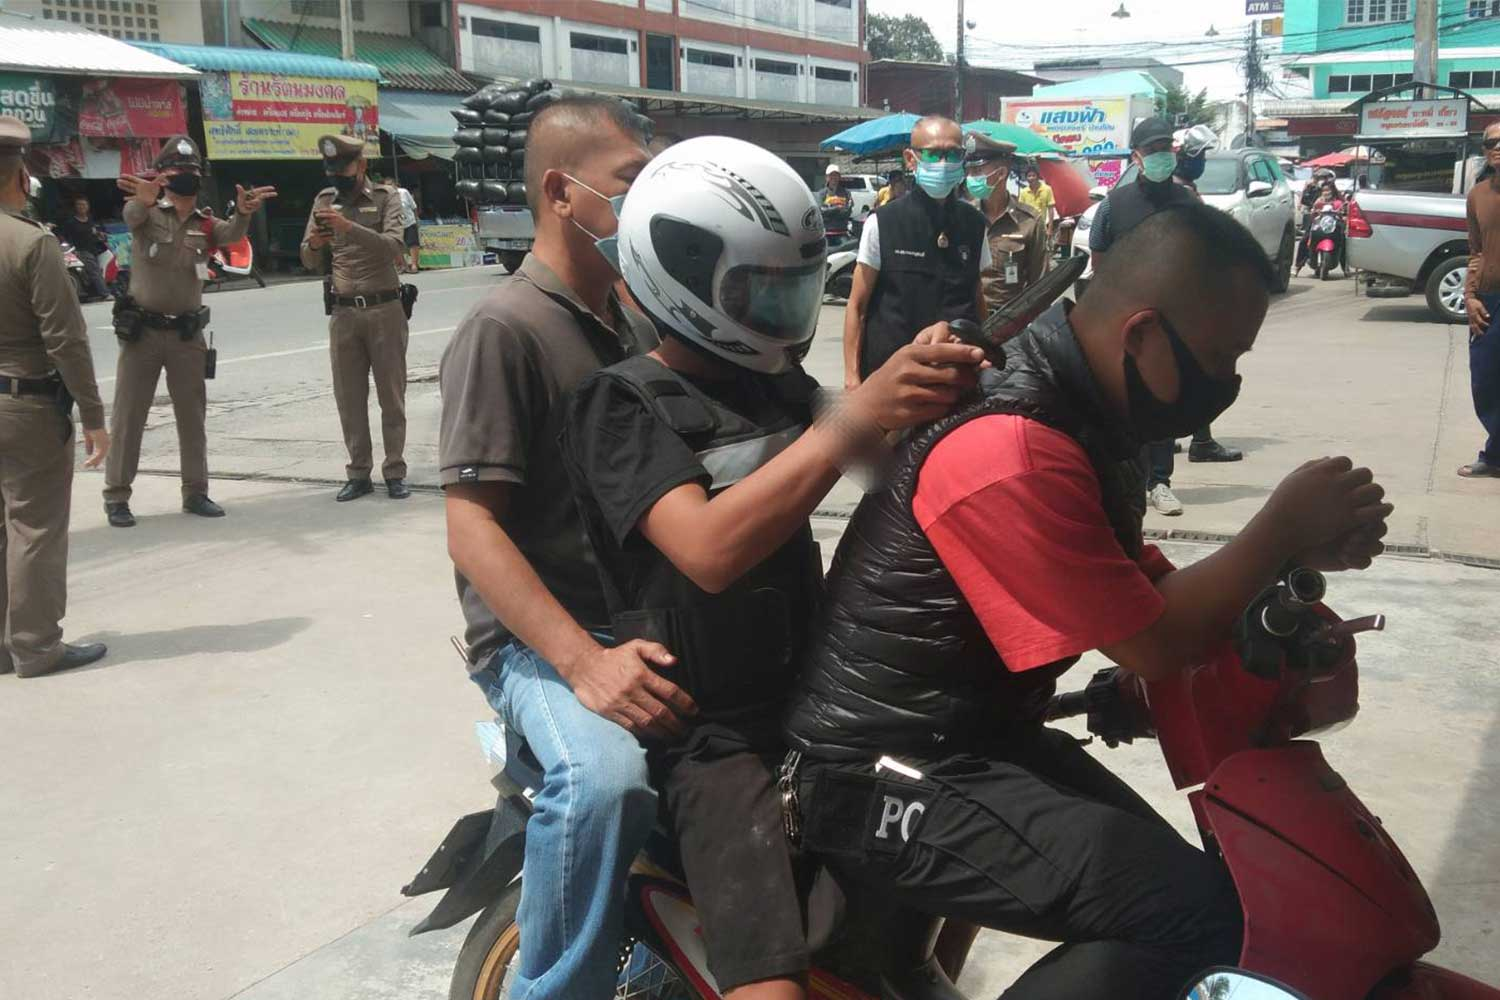 The 21-year-old accused robber, wearing a full-face crash helmet, is taken for a crime re-enactment at a 7-Eleven store in Tha Maka district, Kanchanaburi, on Friday following his arrest on Thursday night. The suspect and a 17-year-old accomplice are charged with holding up the store and taking a young woman employee hostage in the early hours of Thursday. (Photo by Piyarach Chongcharoen)